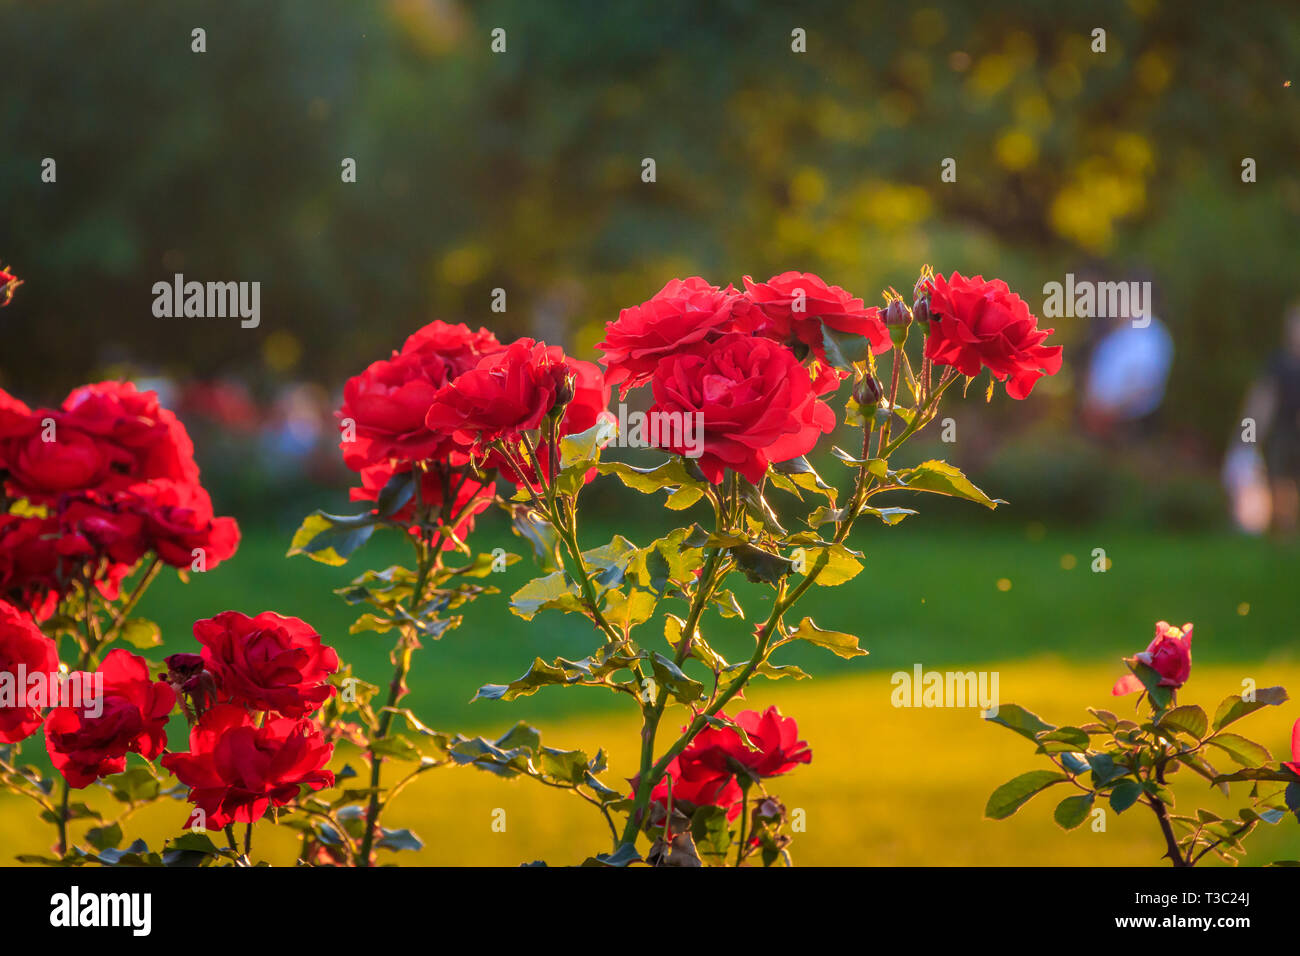 Red roses in the evening light. Beautiful red spray roses